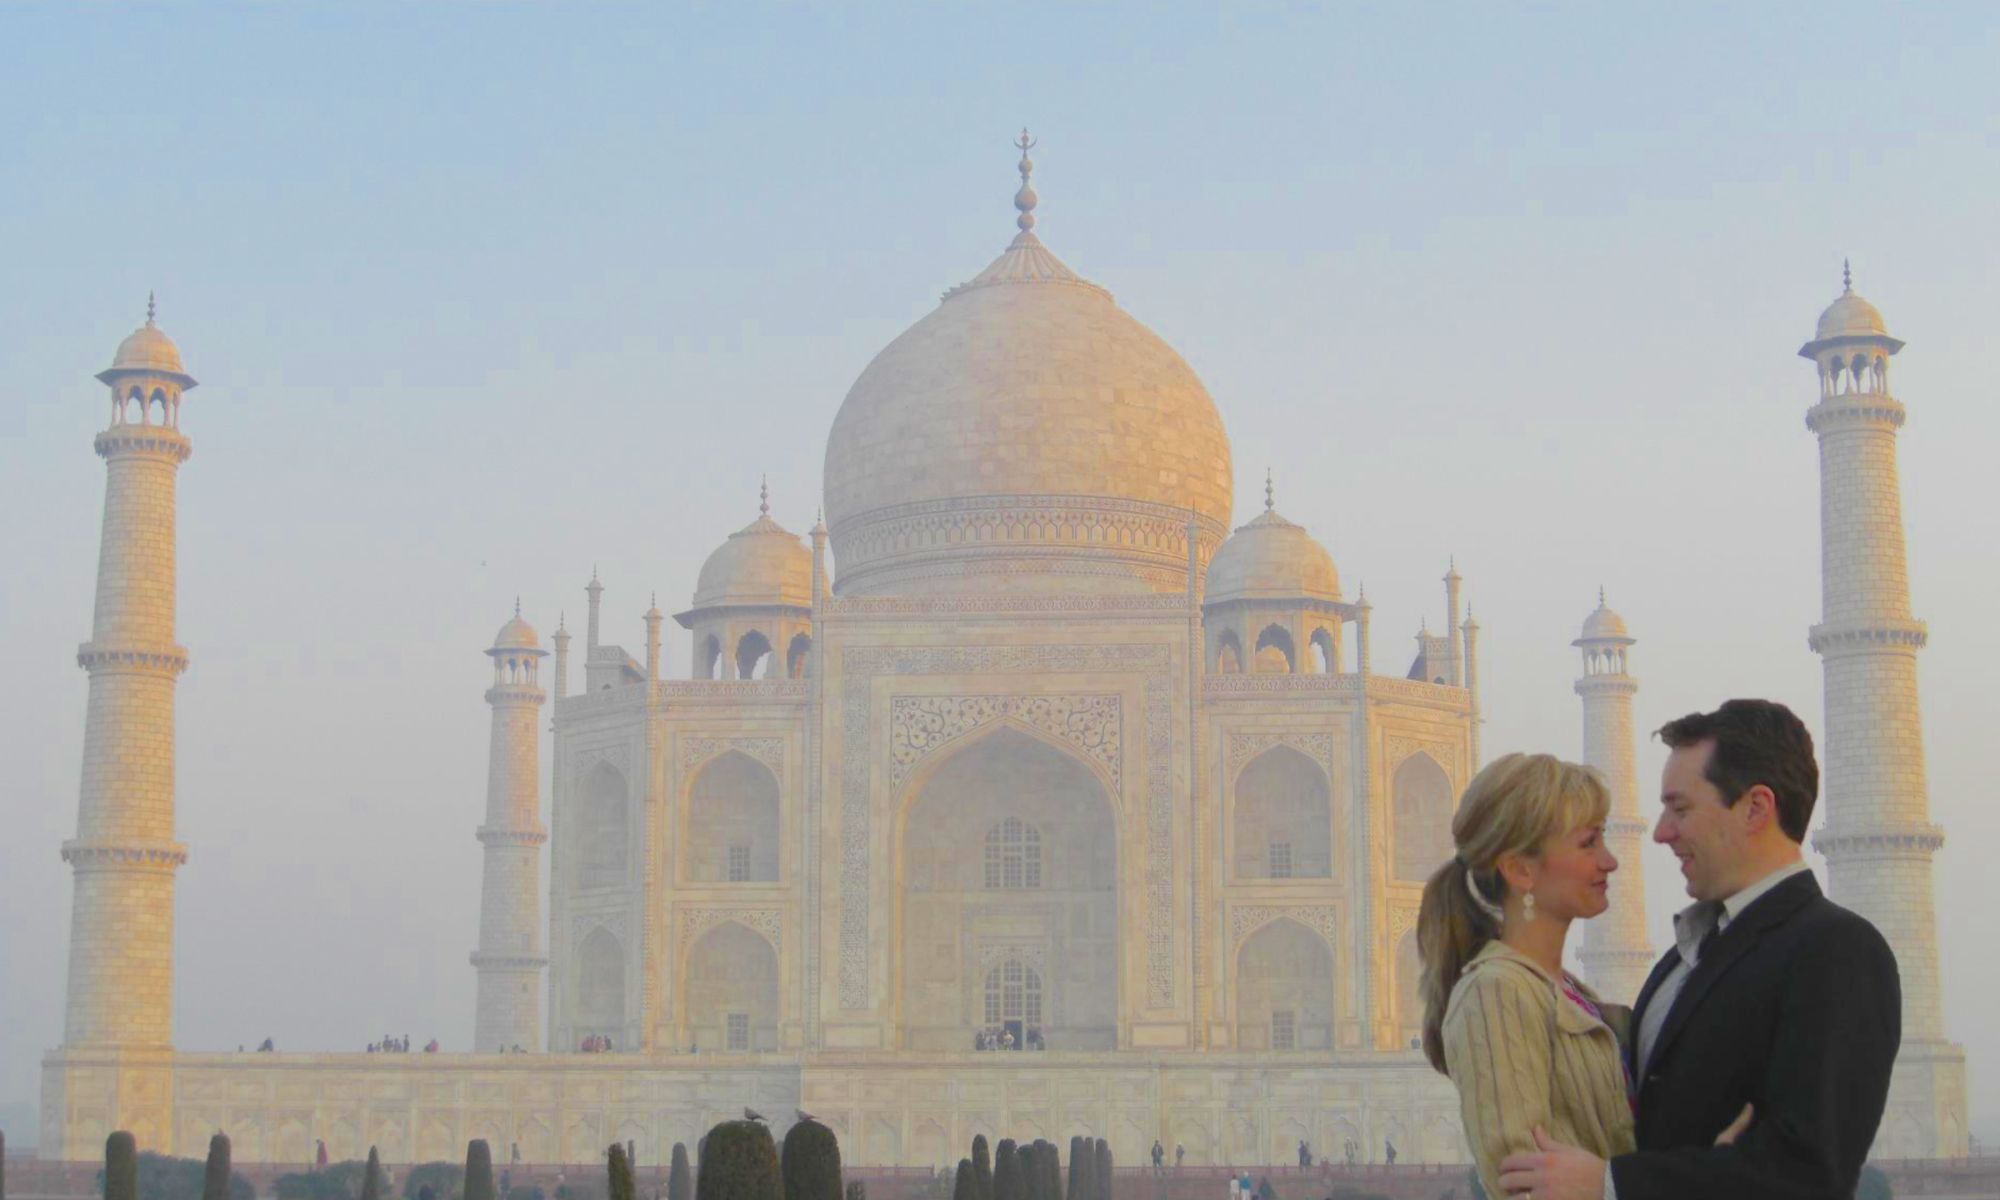 Taj Mahal travel when visiting India